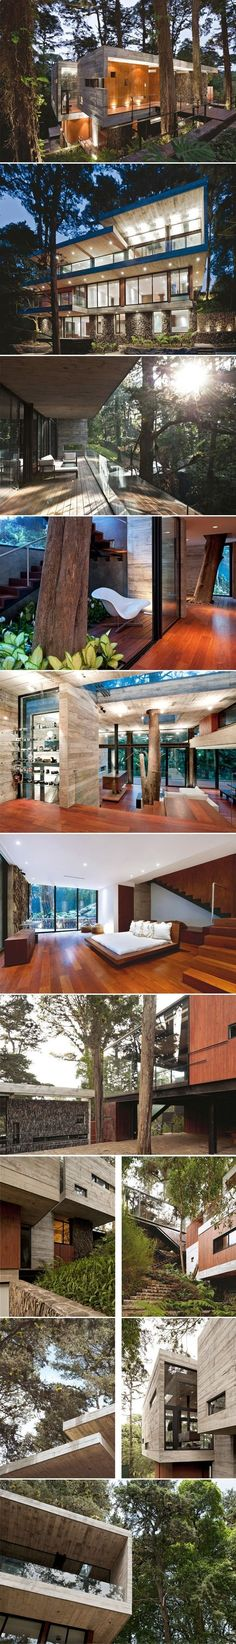 Container House - Superbe-maison-dans-les-arbres-par-Paz-Arquitectura-2 - Who Else Wants Simple Step-By-Step Plans To Design And Build A Container Home From Scratch?